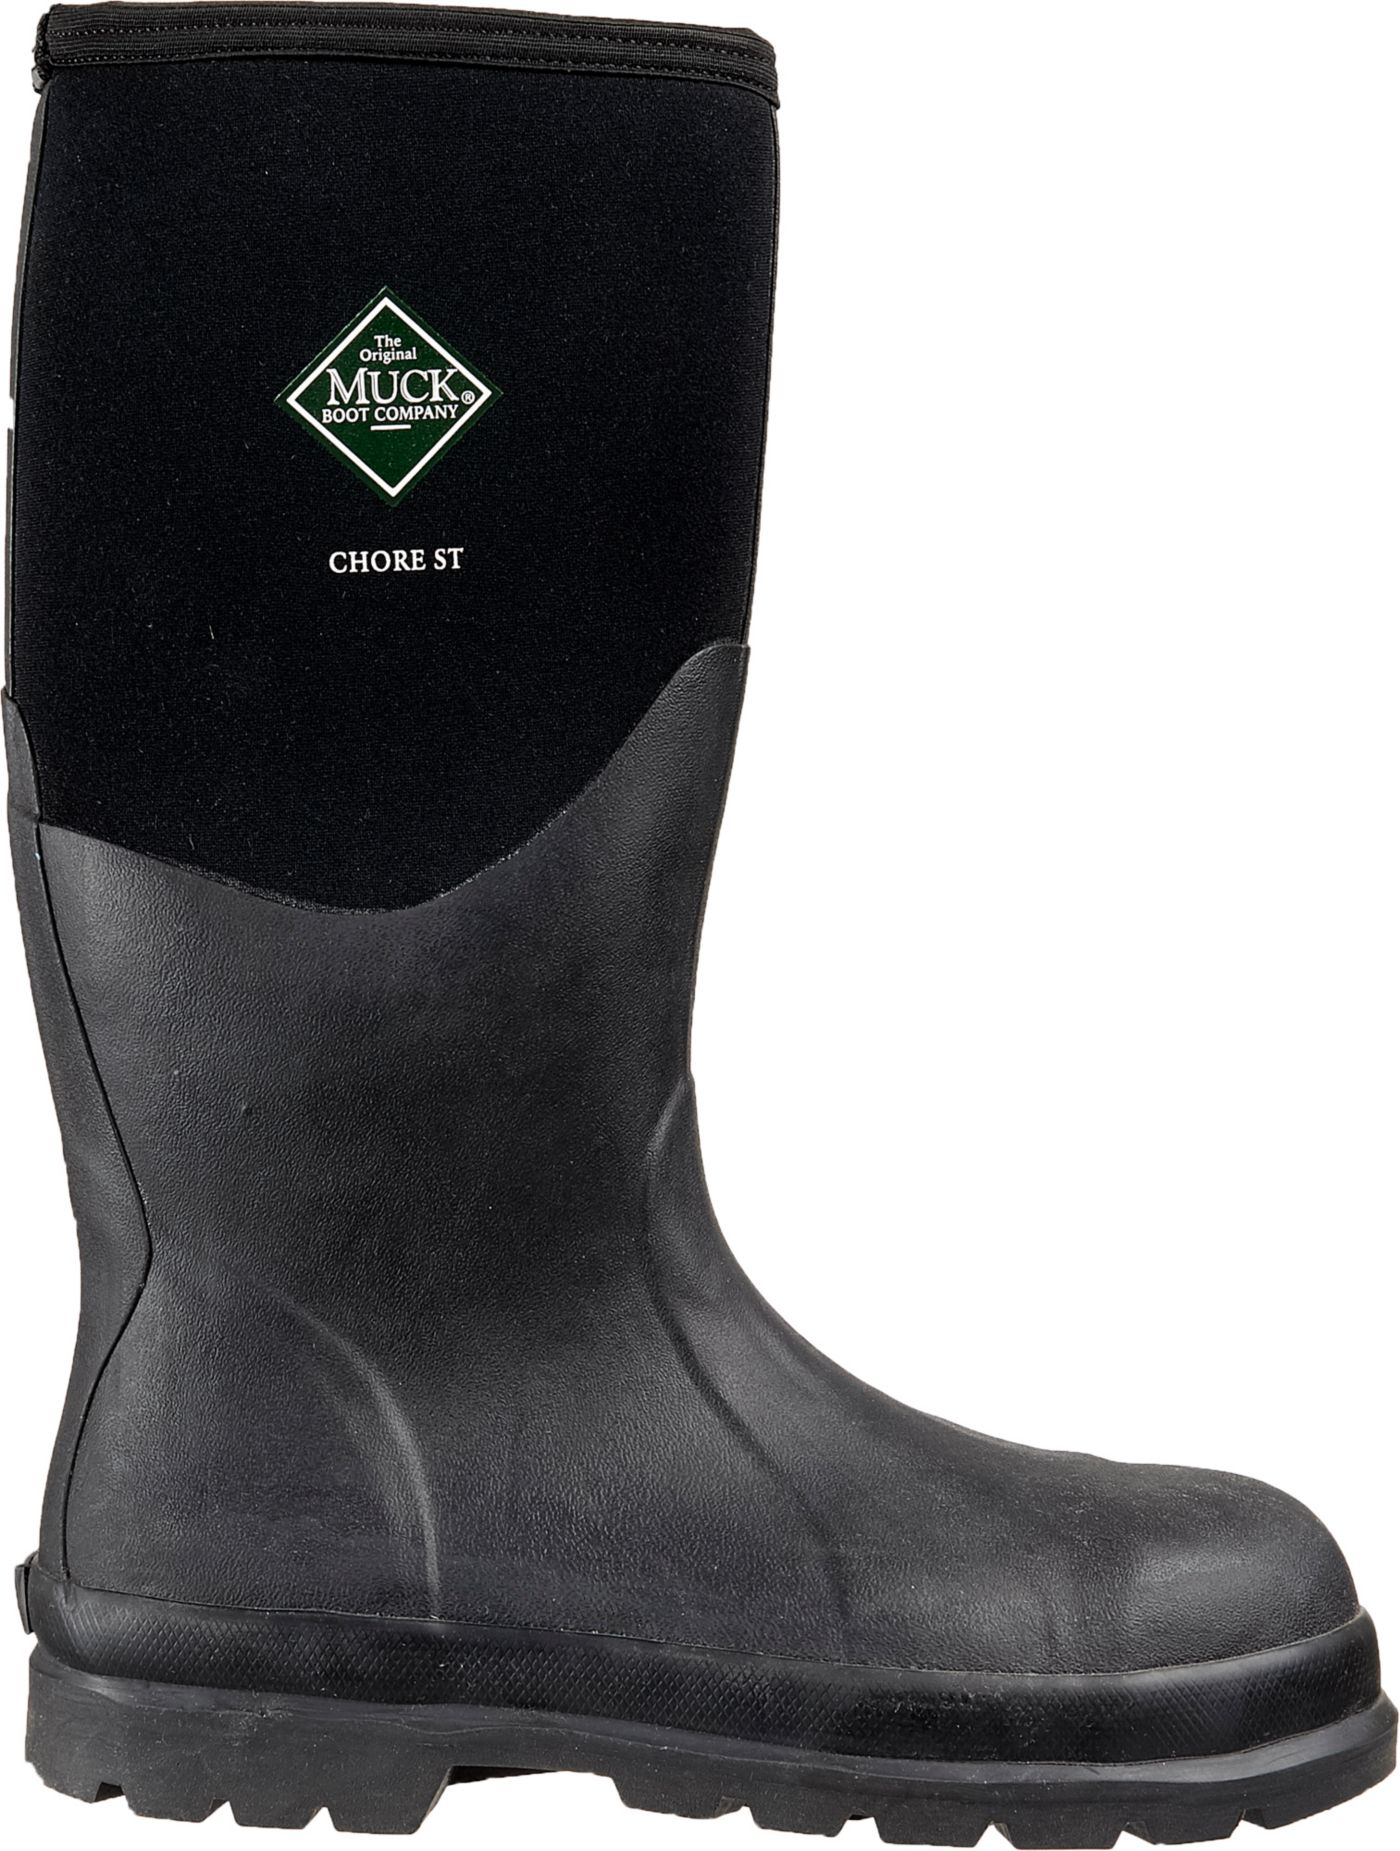 Muck Boots Men's Chore Hi Waterproof Work Boots